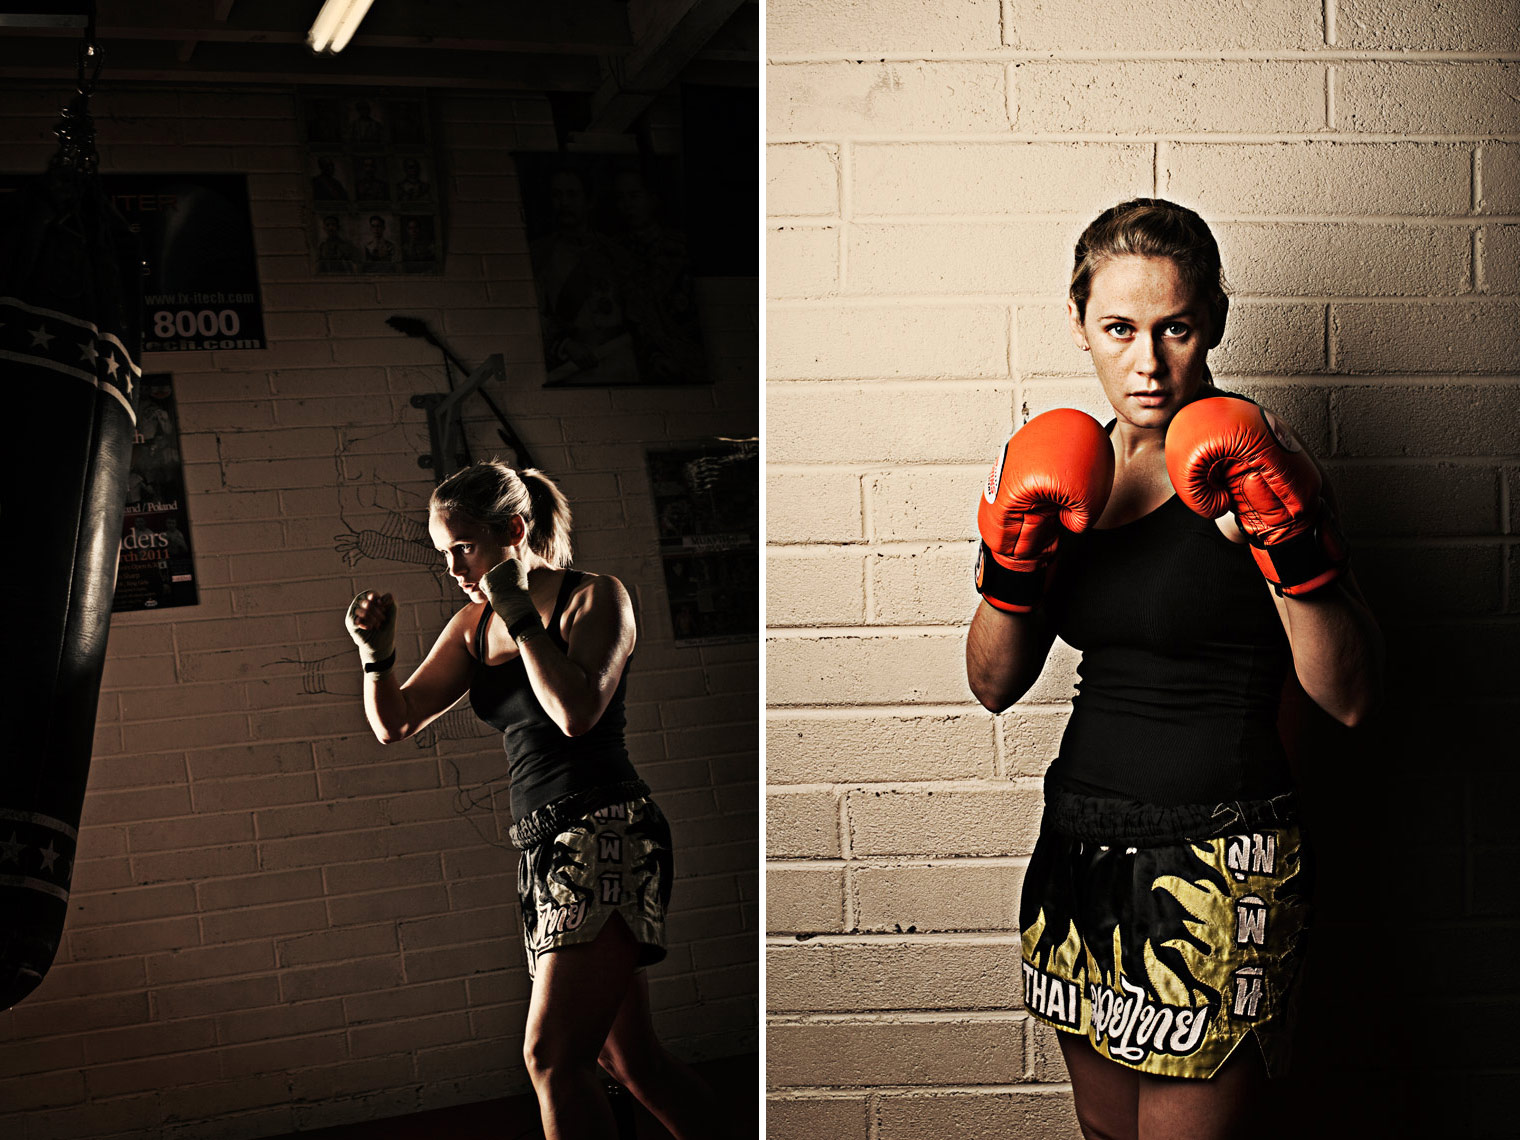 athlete portraits: kick boxer punching bag